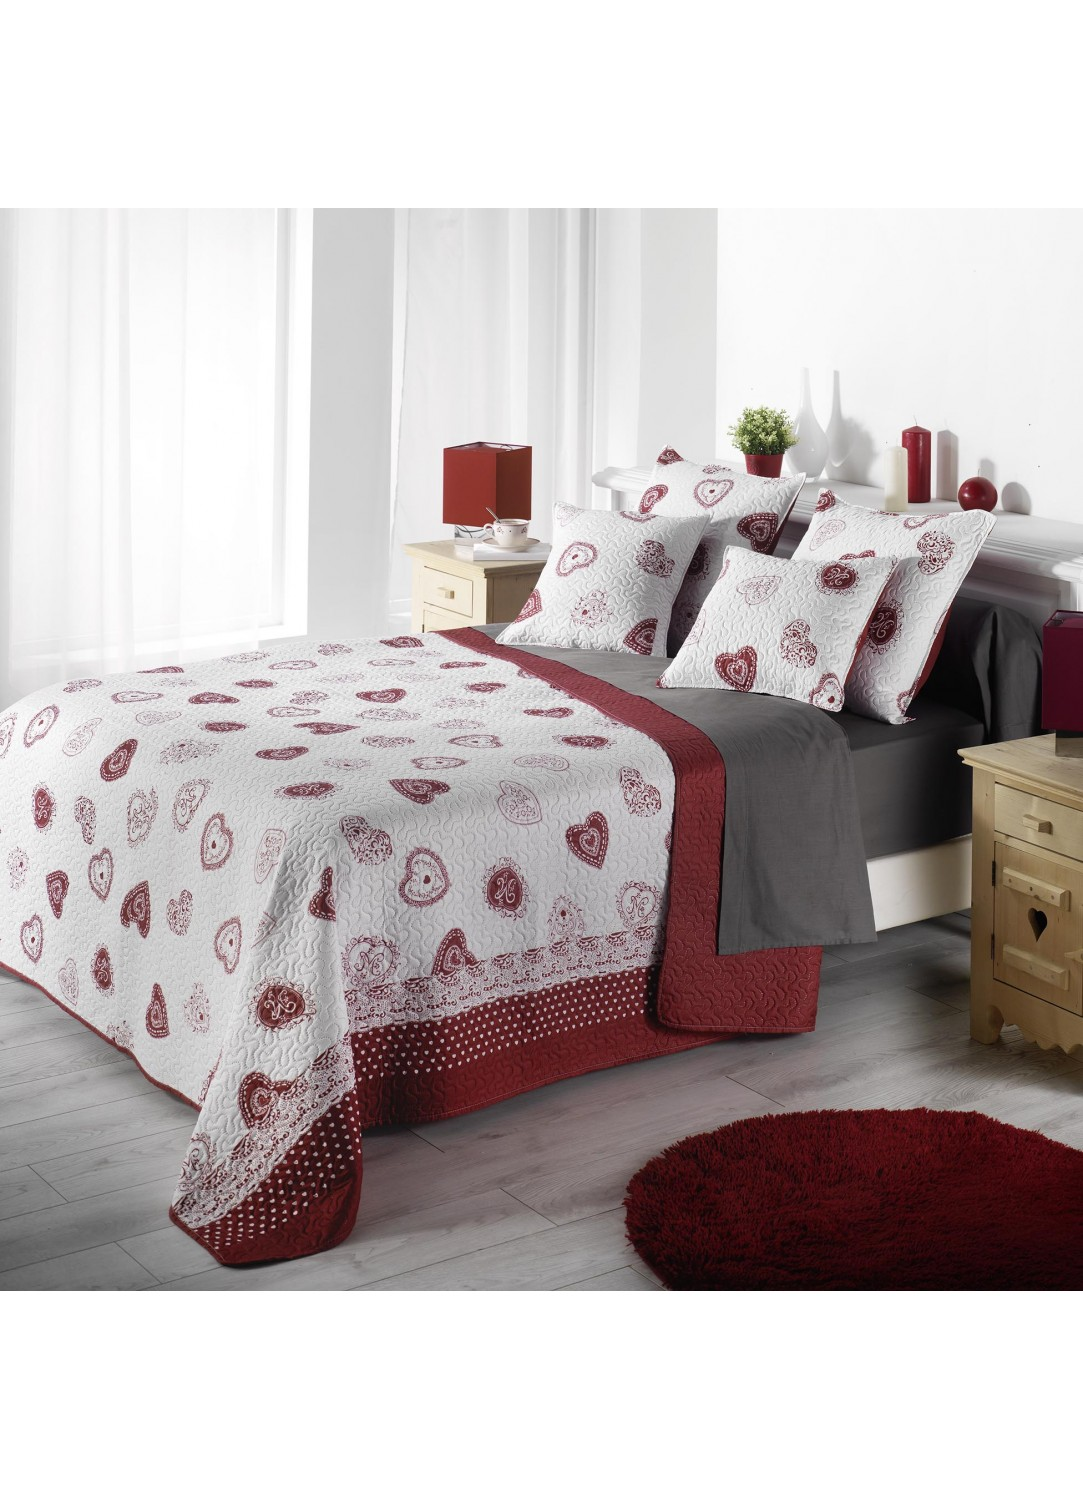 couvre lit matelass imprim c urs rouge homemaison vente en ligne couverture boutis. Black Bedroom Furniture Sets. Home Design Ideas